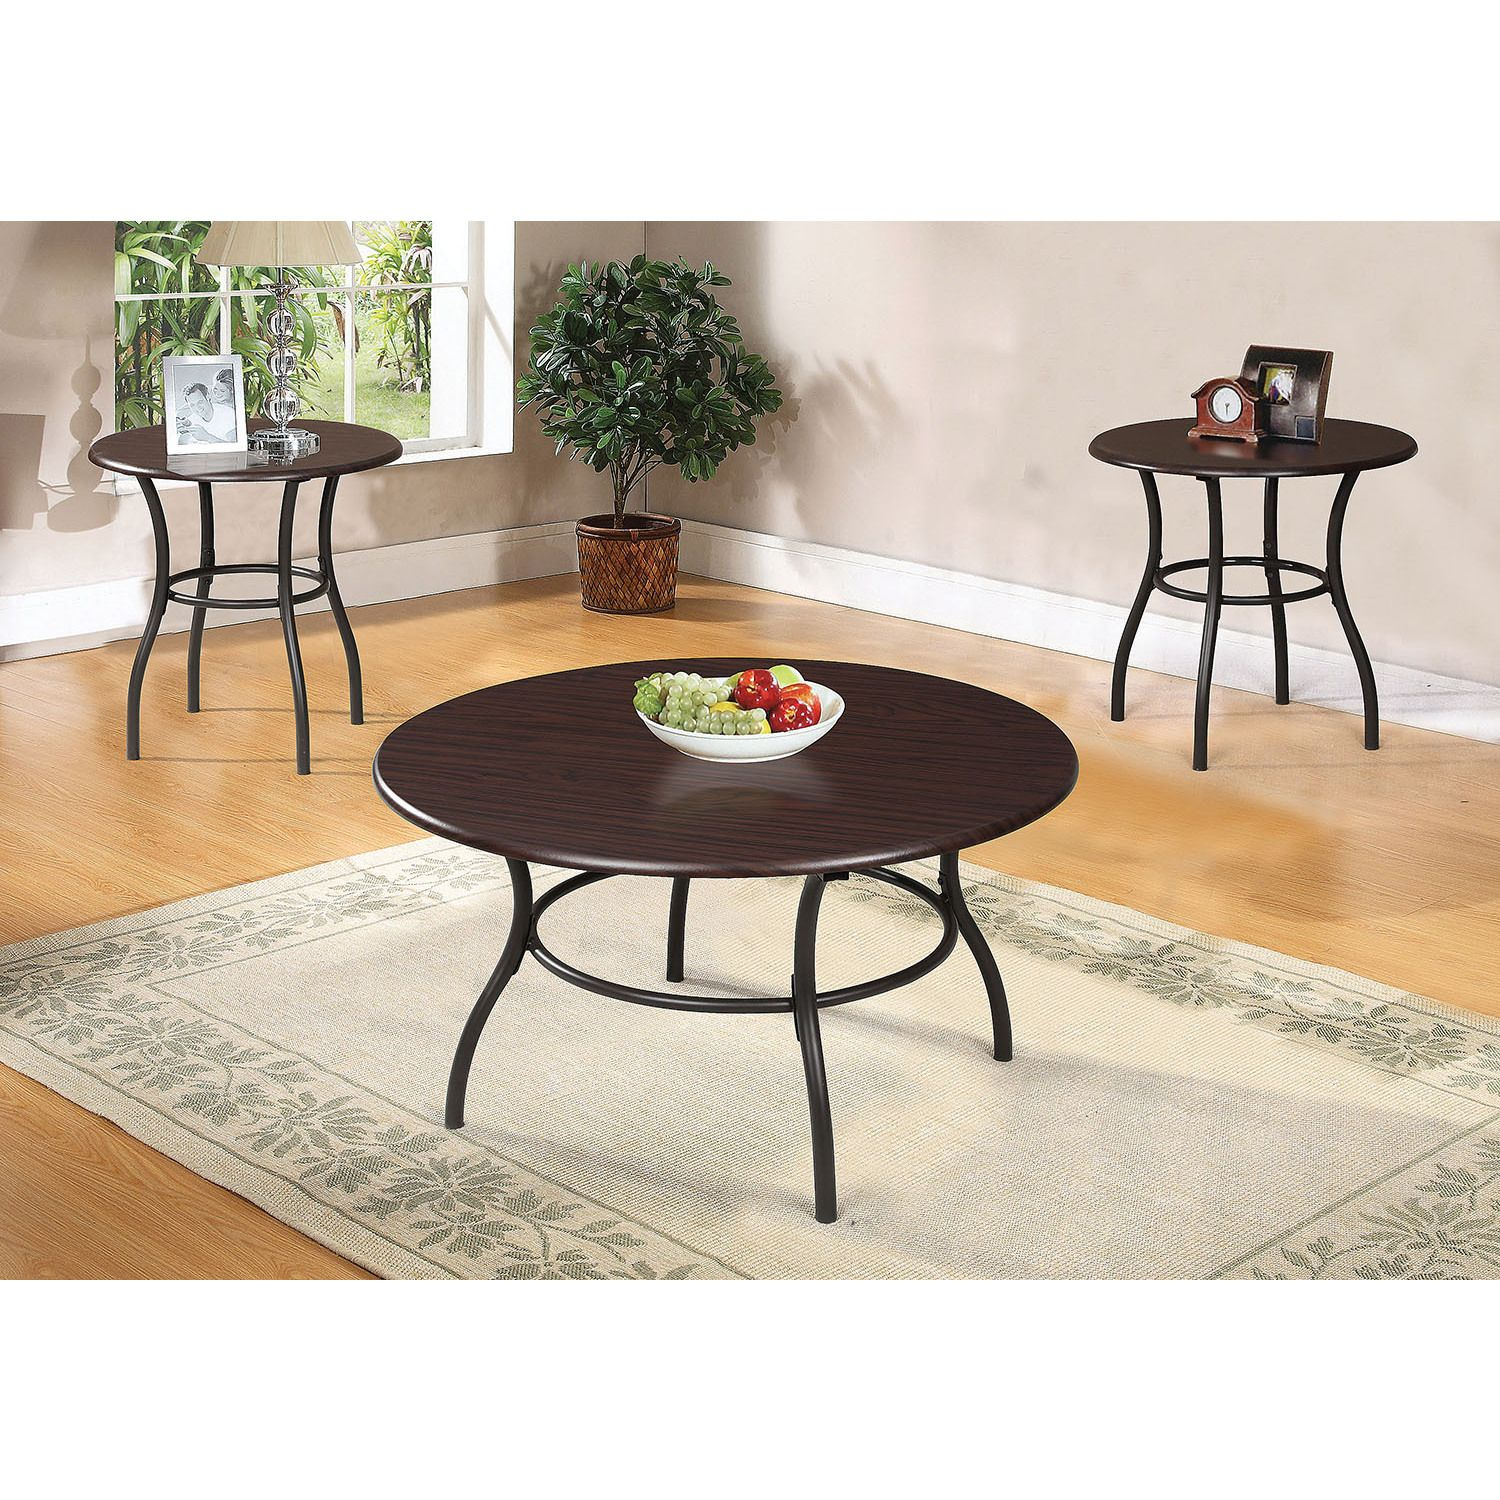 Urika 3 Piece Coffee And End Table Set Dark Cherry Espresso 3pc Coffee 2 End Tables Dark